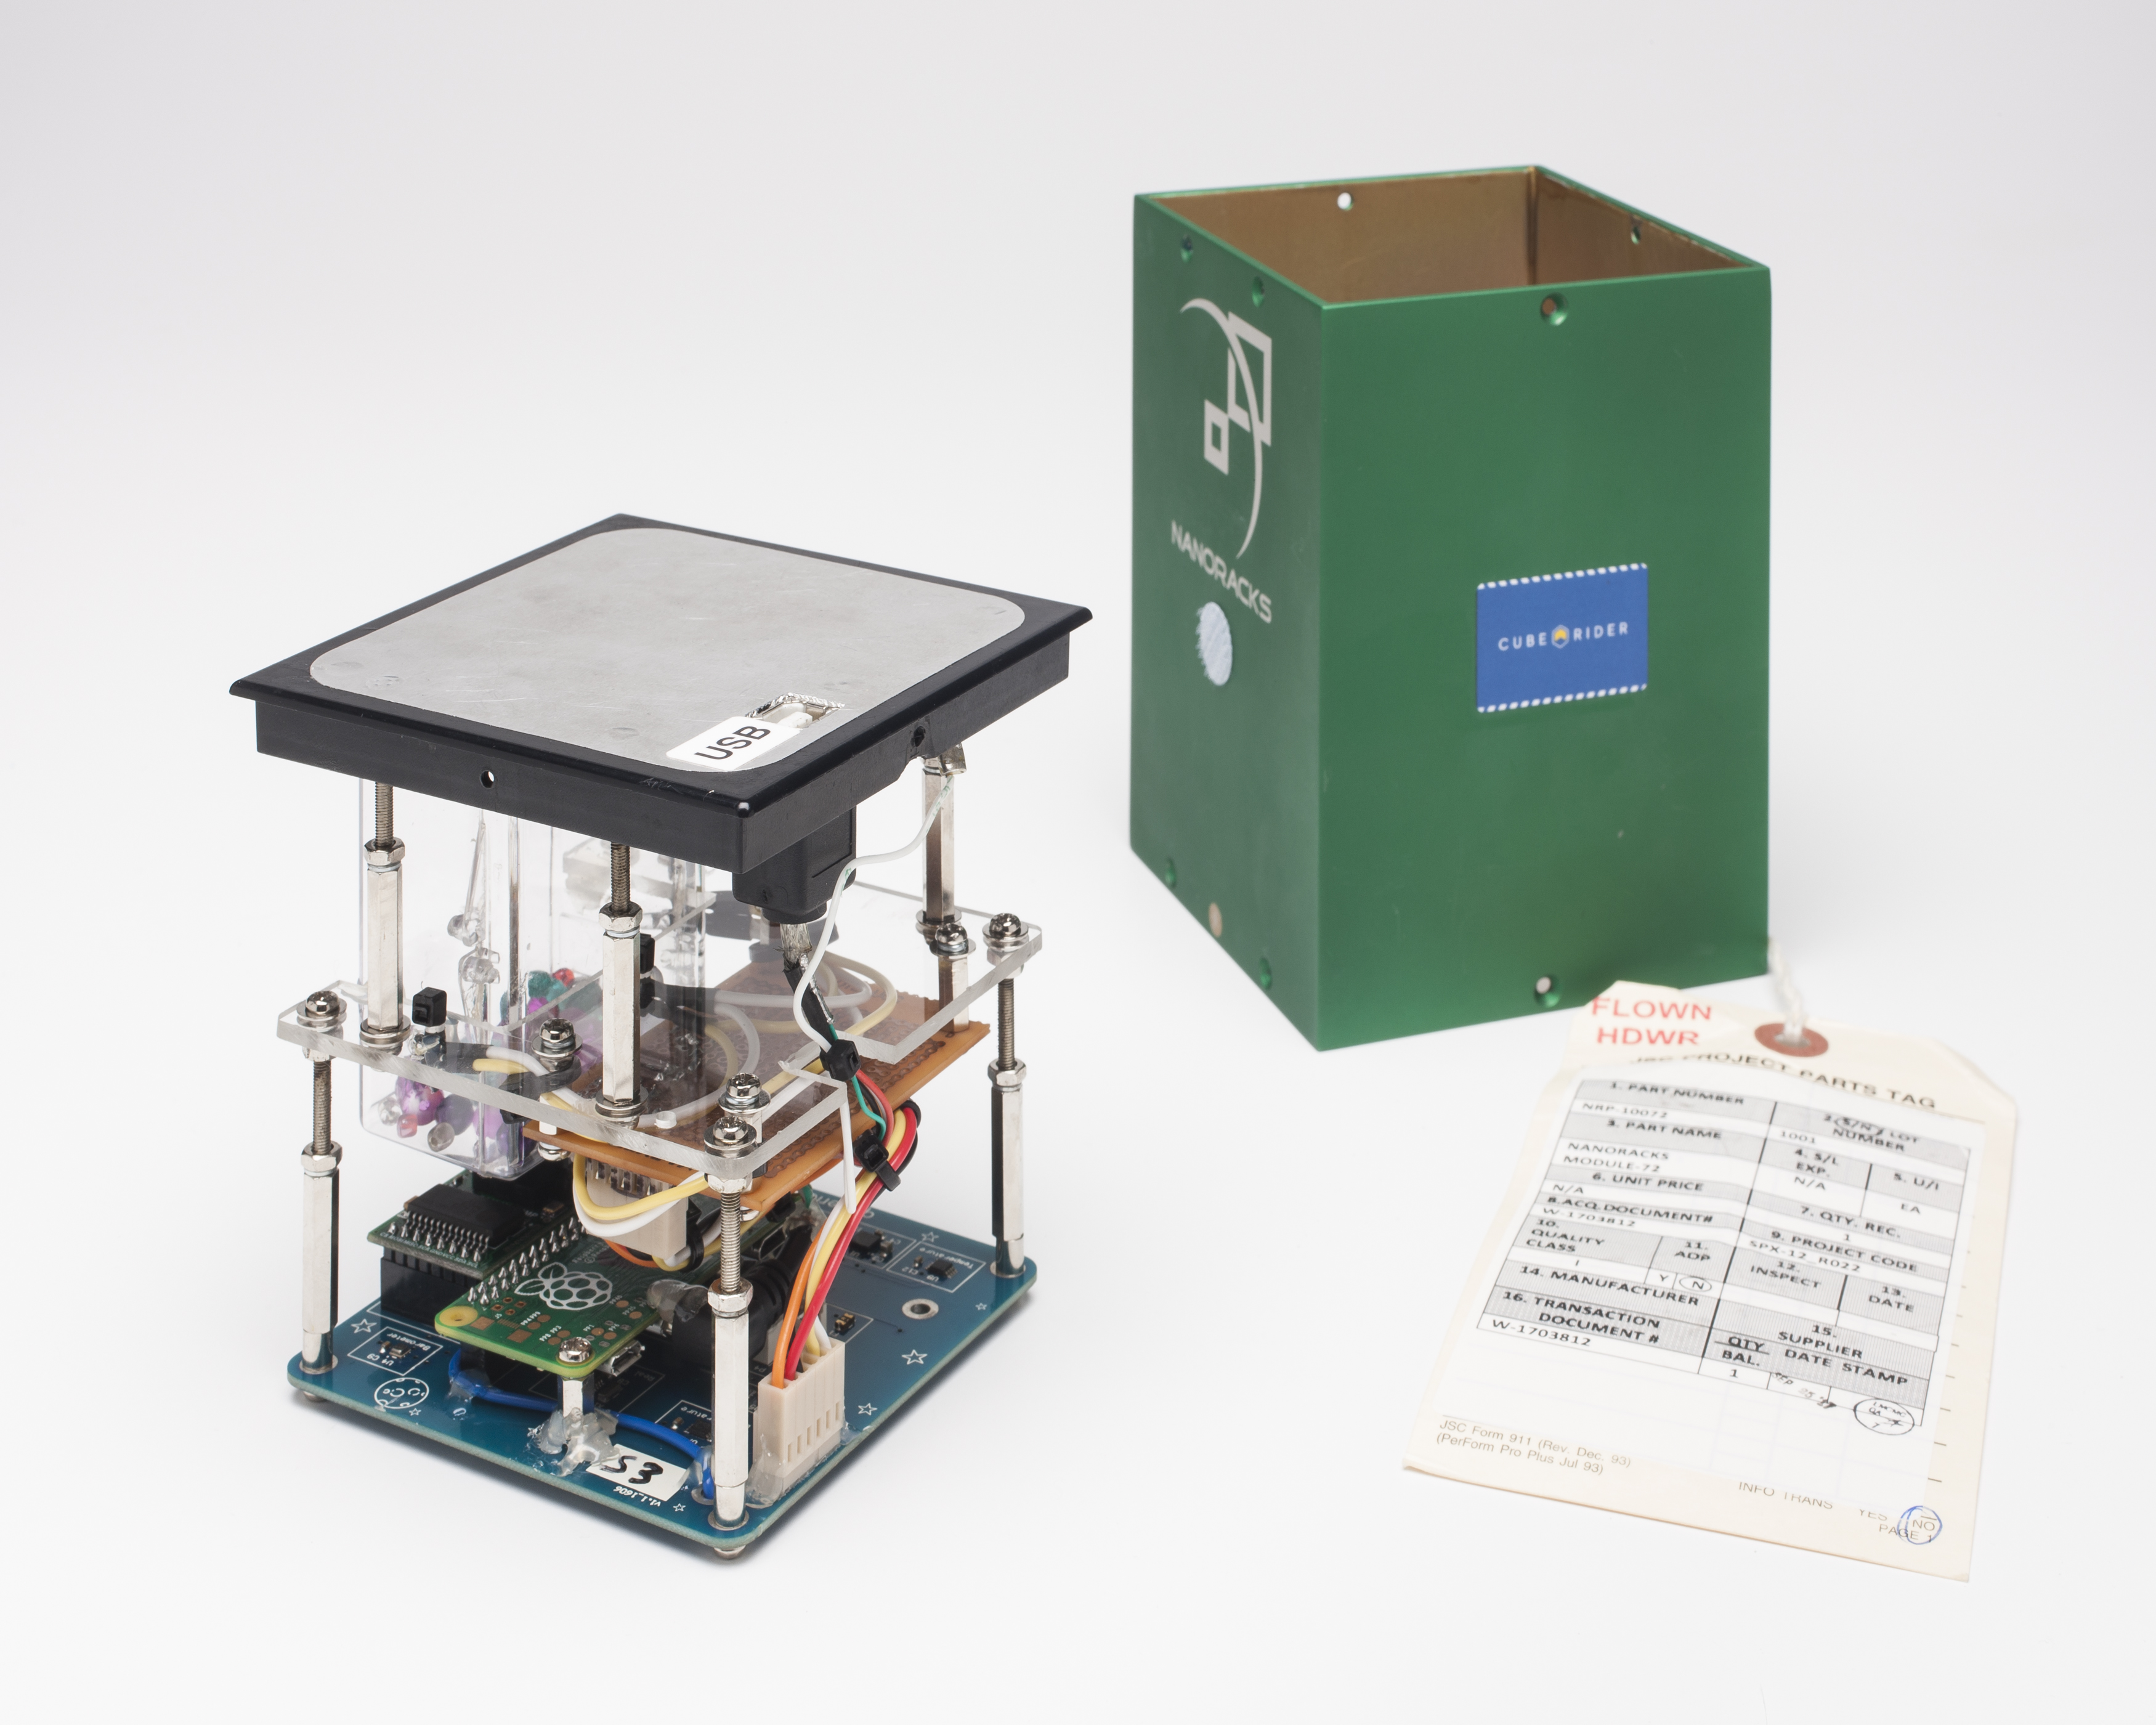 A rectangular unit about 15cm high, comprising a series of electronics. On the right is a green metal case for the device, and attached to it a paper label stamped with the words 'FLOWN HDWR'.